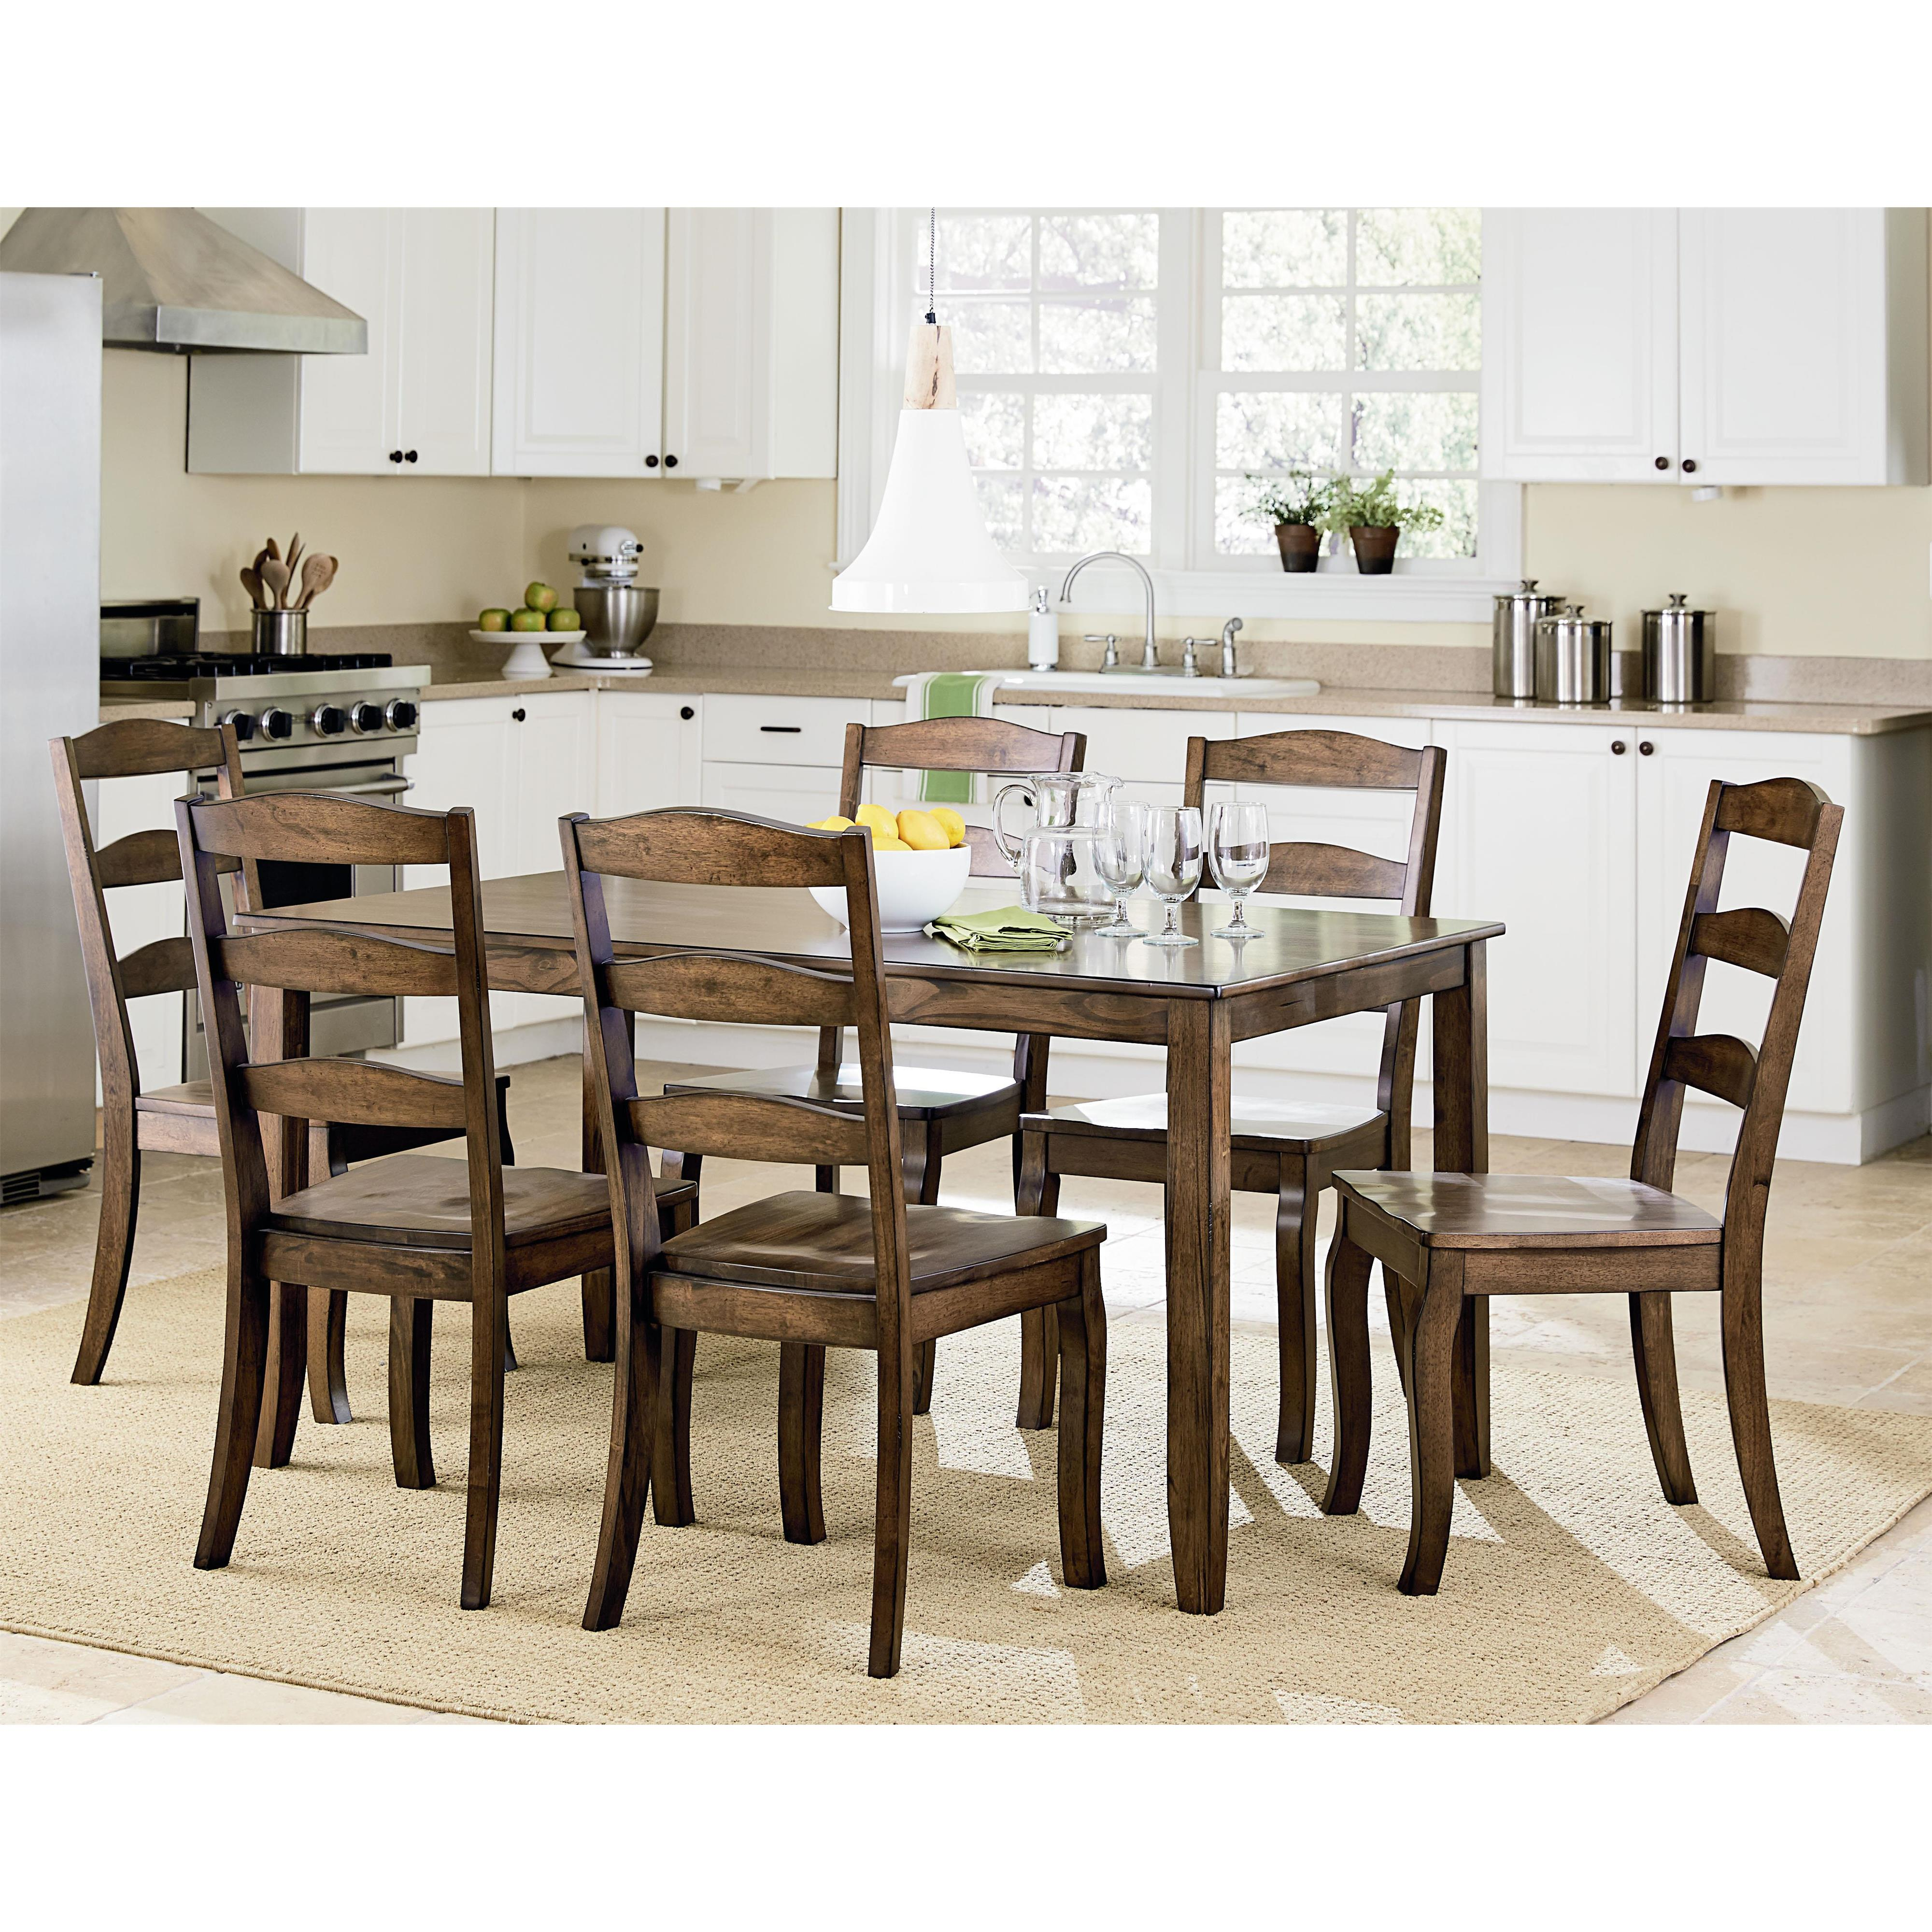 Standard Furniture Highland Table and Chair Set      - Item Number: 16562